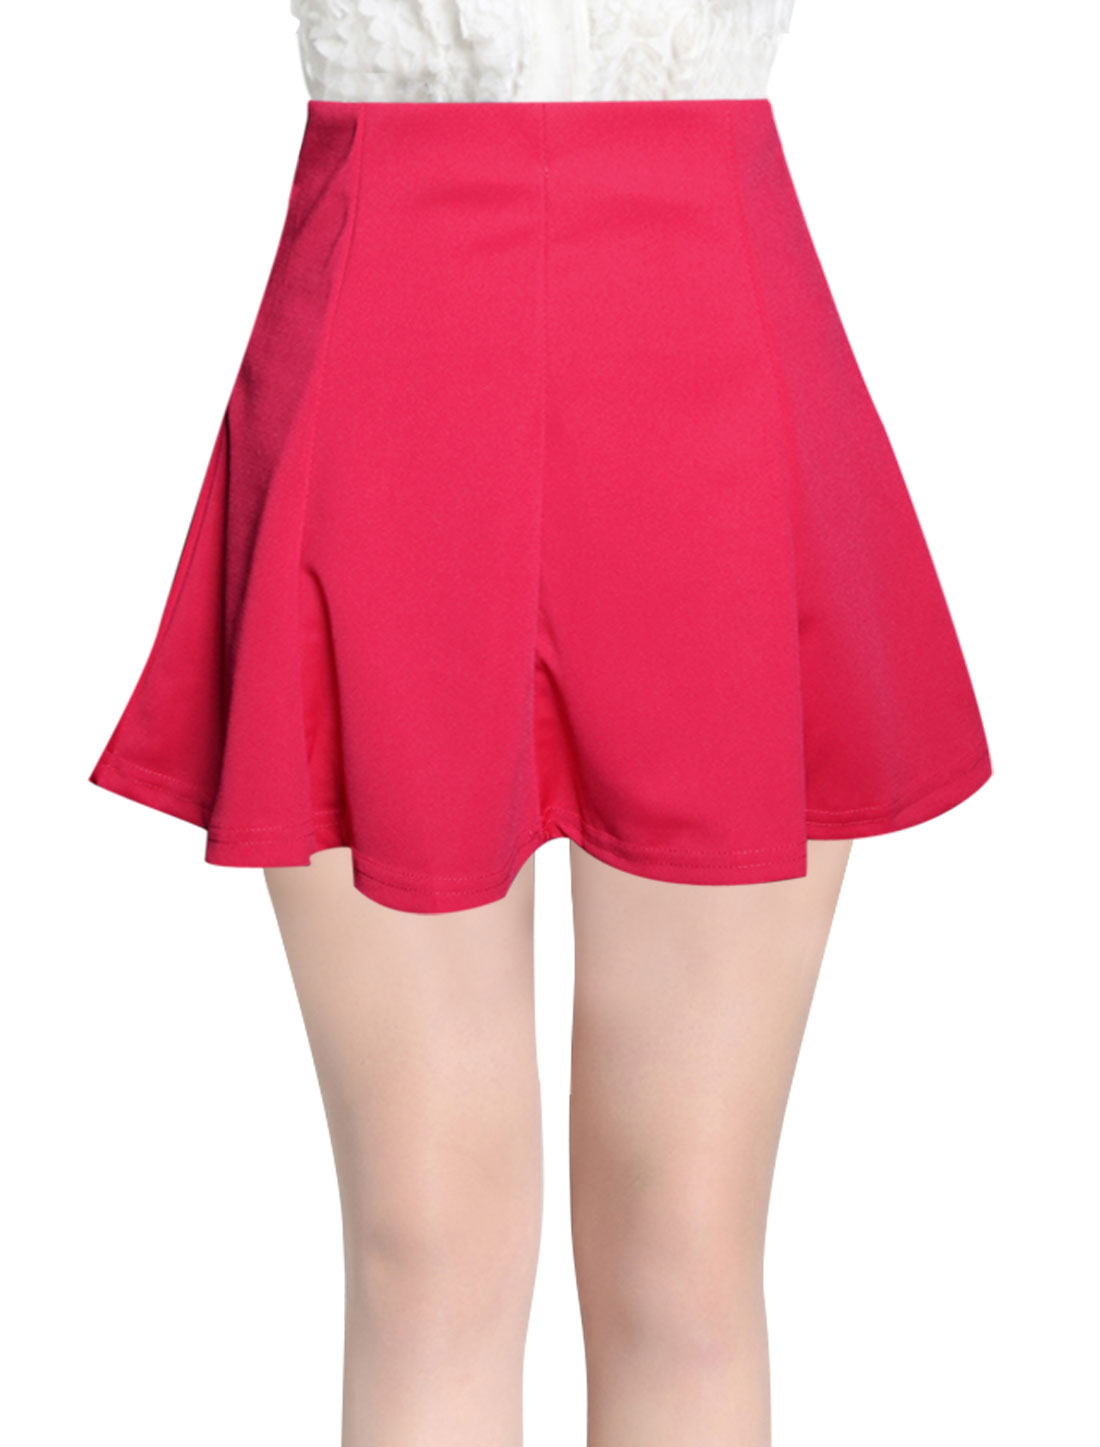 Lady Stretchy Waist Mini Fit w Flare Skirt Fuchsia XS